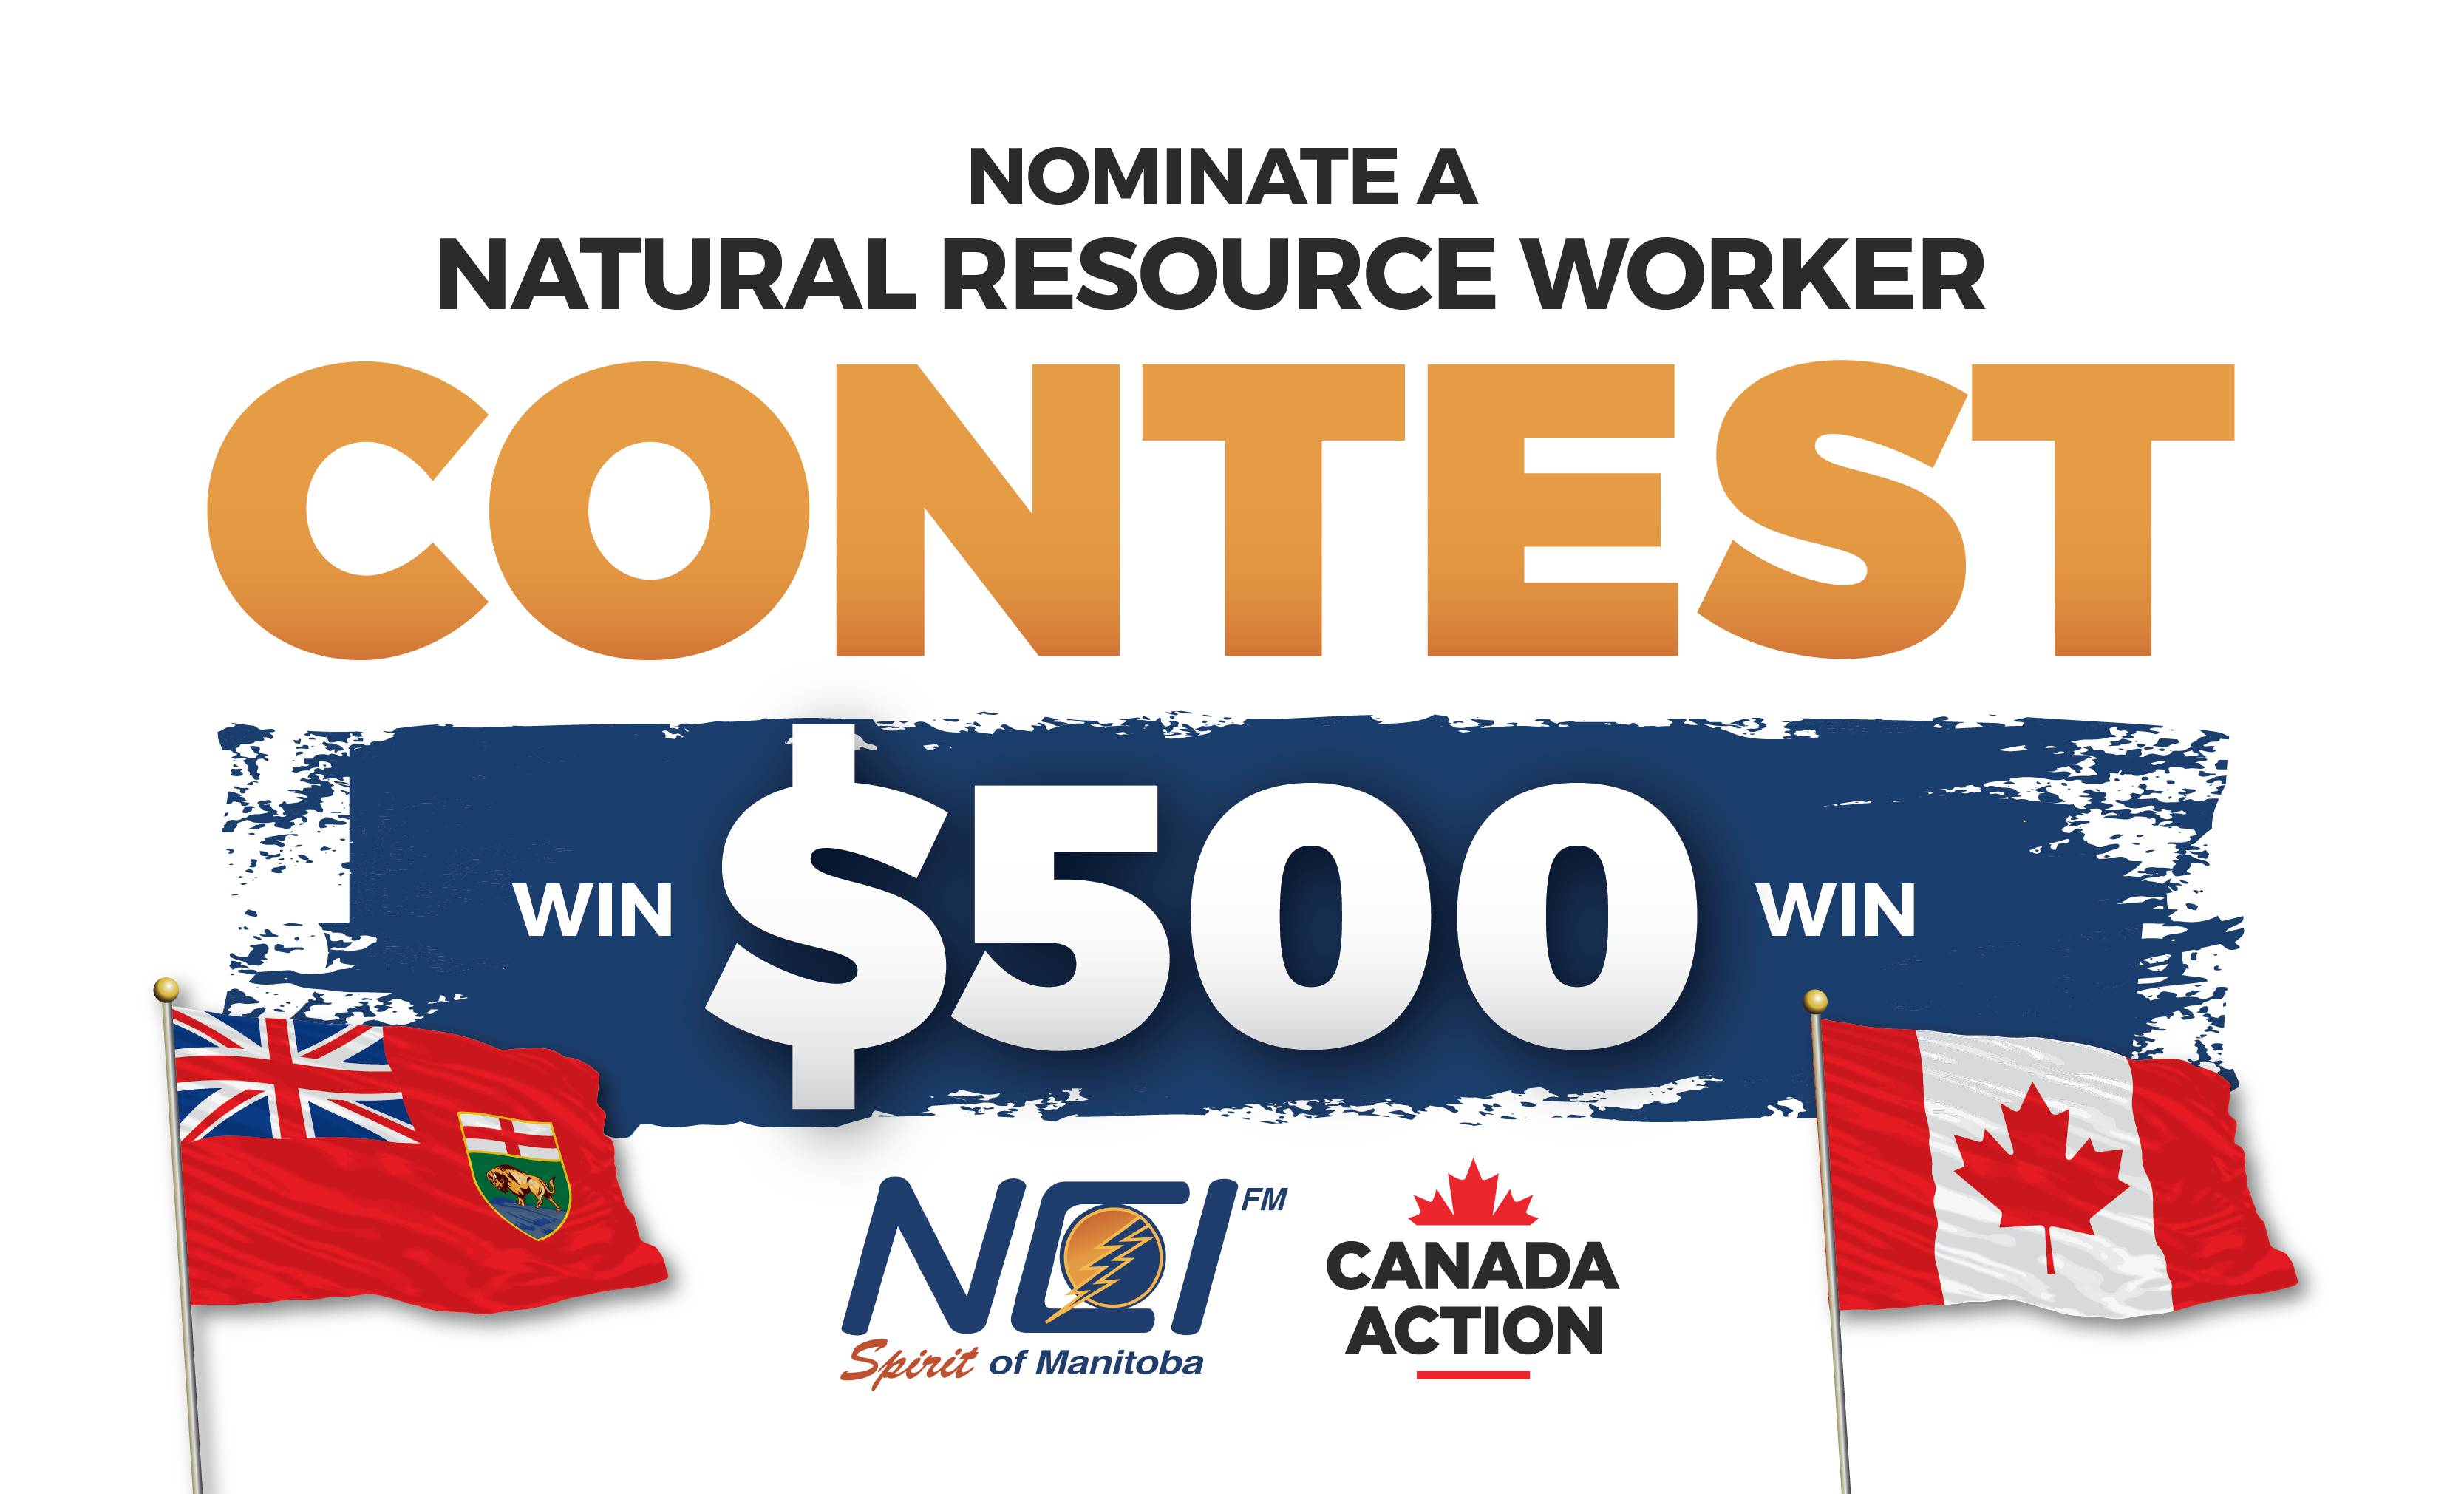 WIN $500! - Nominate a Natural Resource Worker in Manitoba Contest - NCI FM